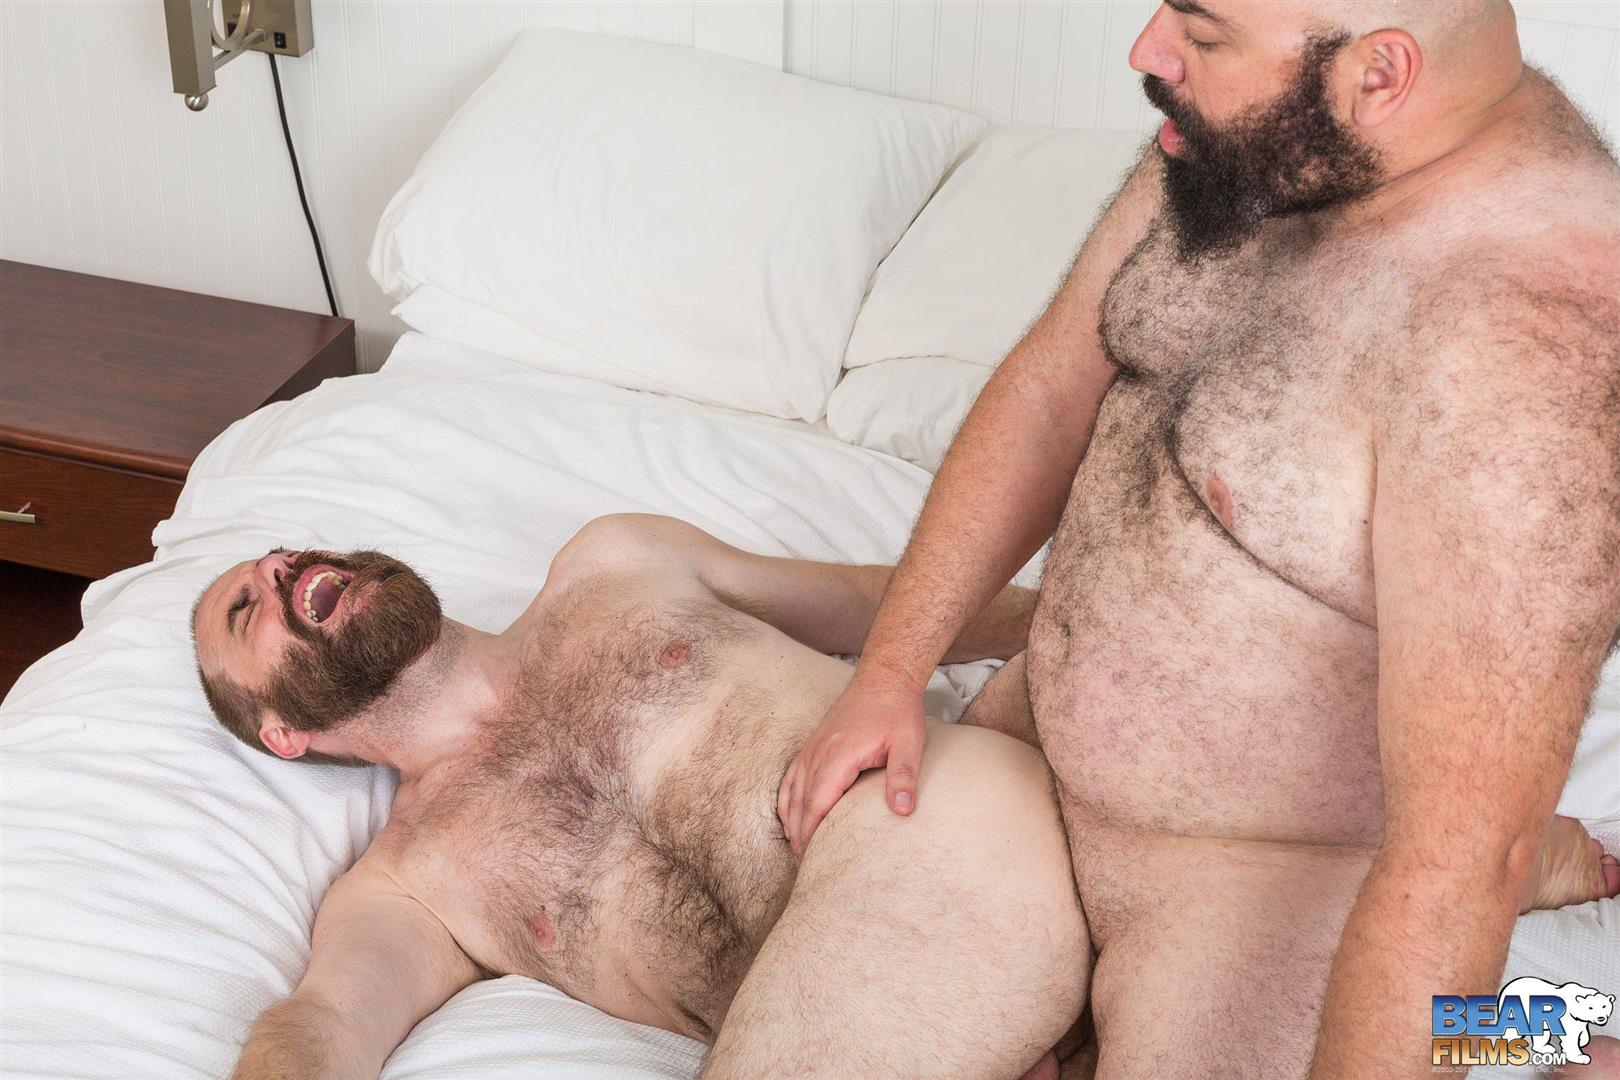 chub sex  gay Chub Gay Sex Gay bear chub porn Fat chub bear gay blowjob fat chub gay gay